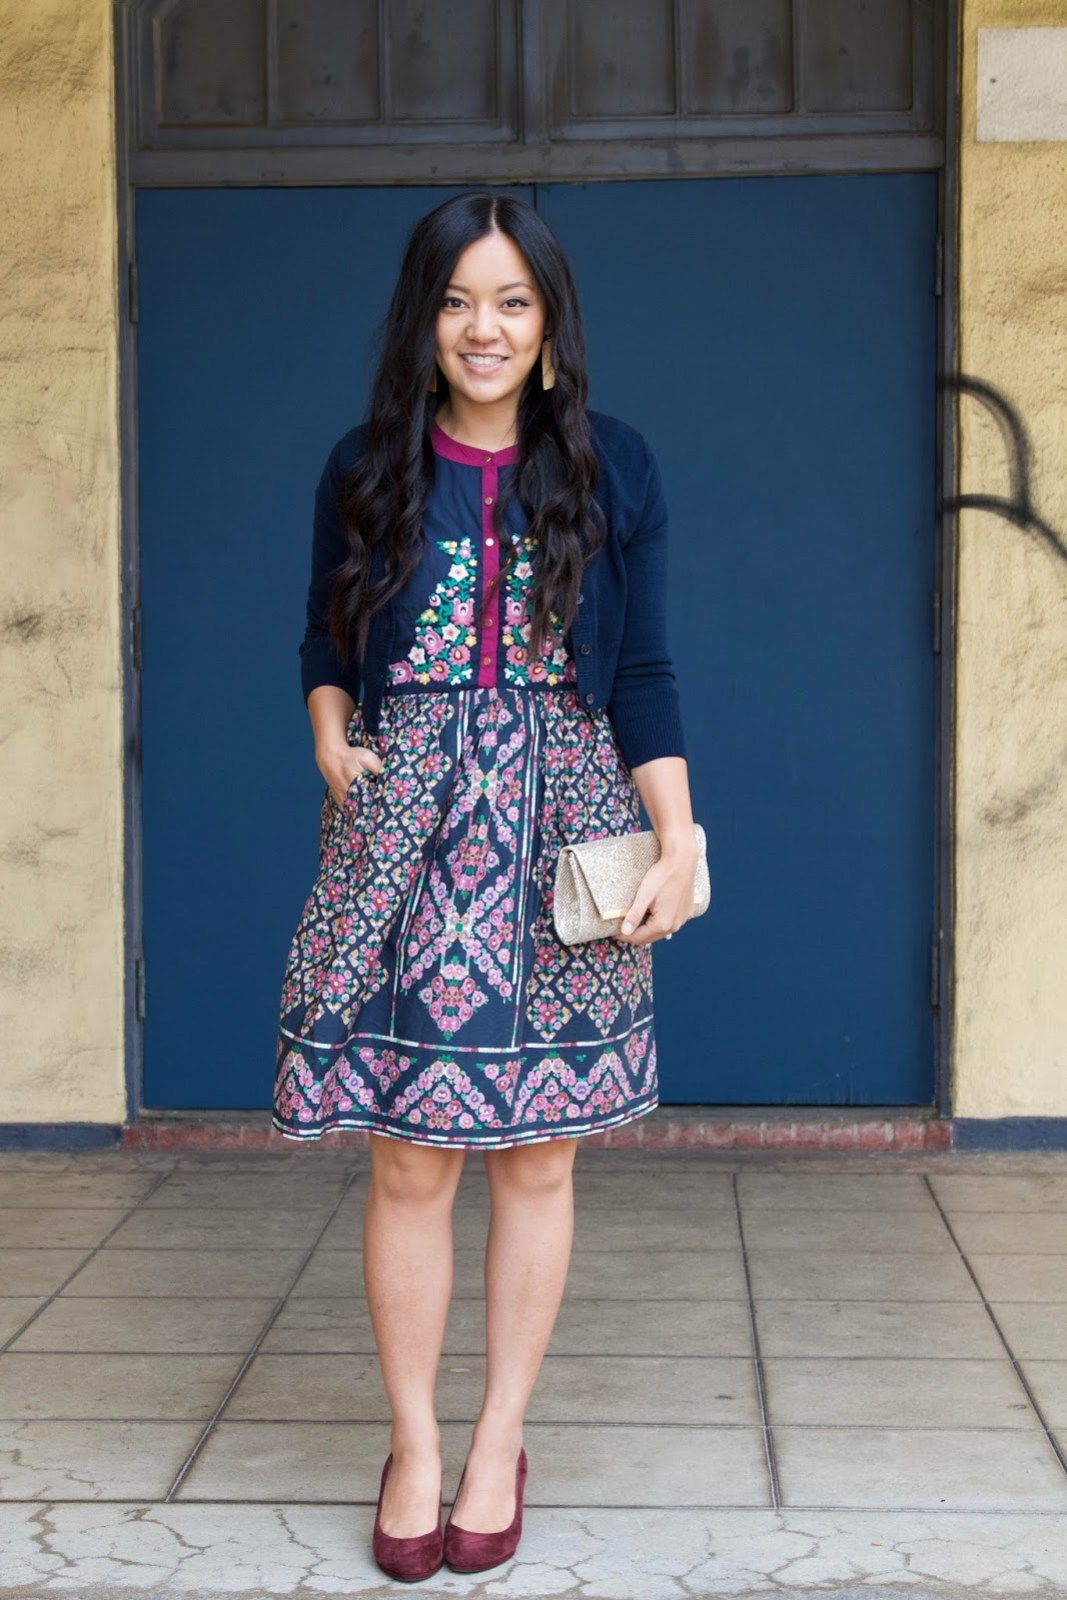 Blue Floral Dress + Navy Cardigan + Gold Clutch + Gold Earrings + Maroon Pumps